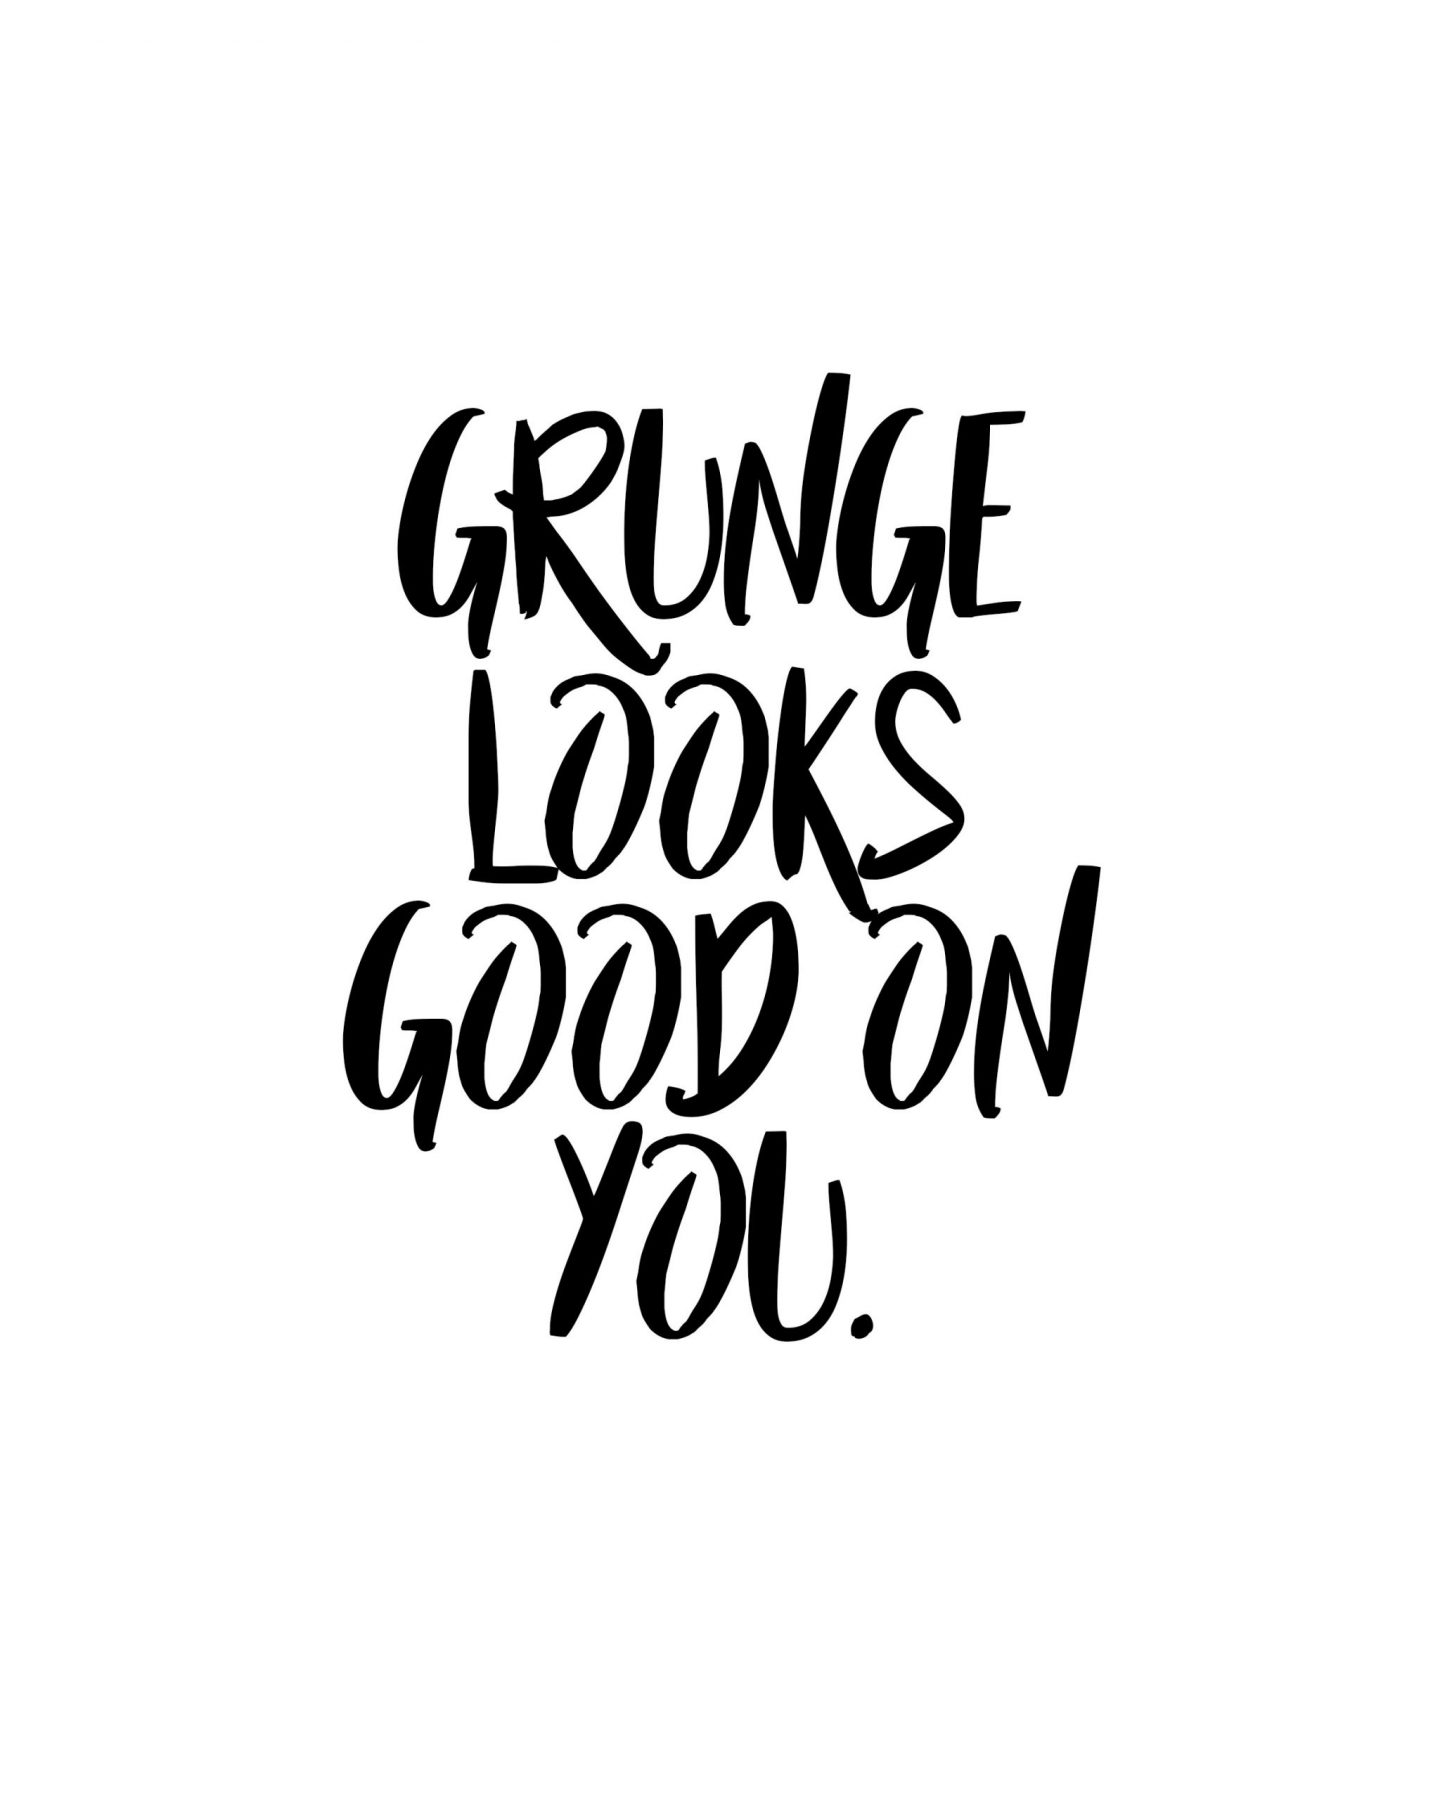 Captain Marvel Printable Quote_Grunge Looks Good on You8x10